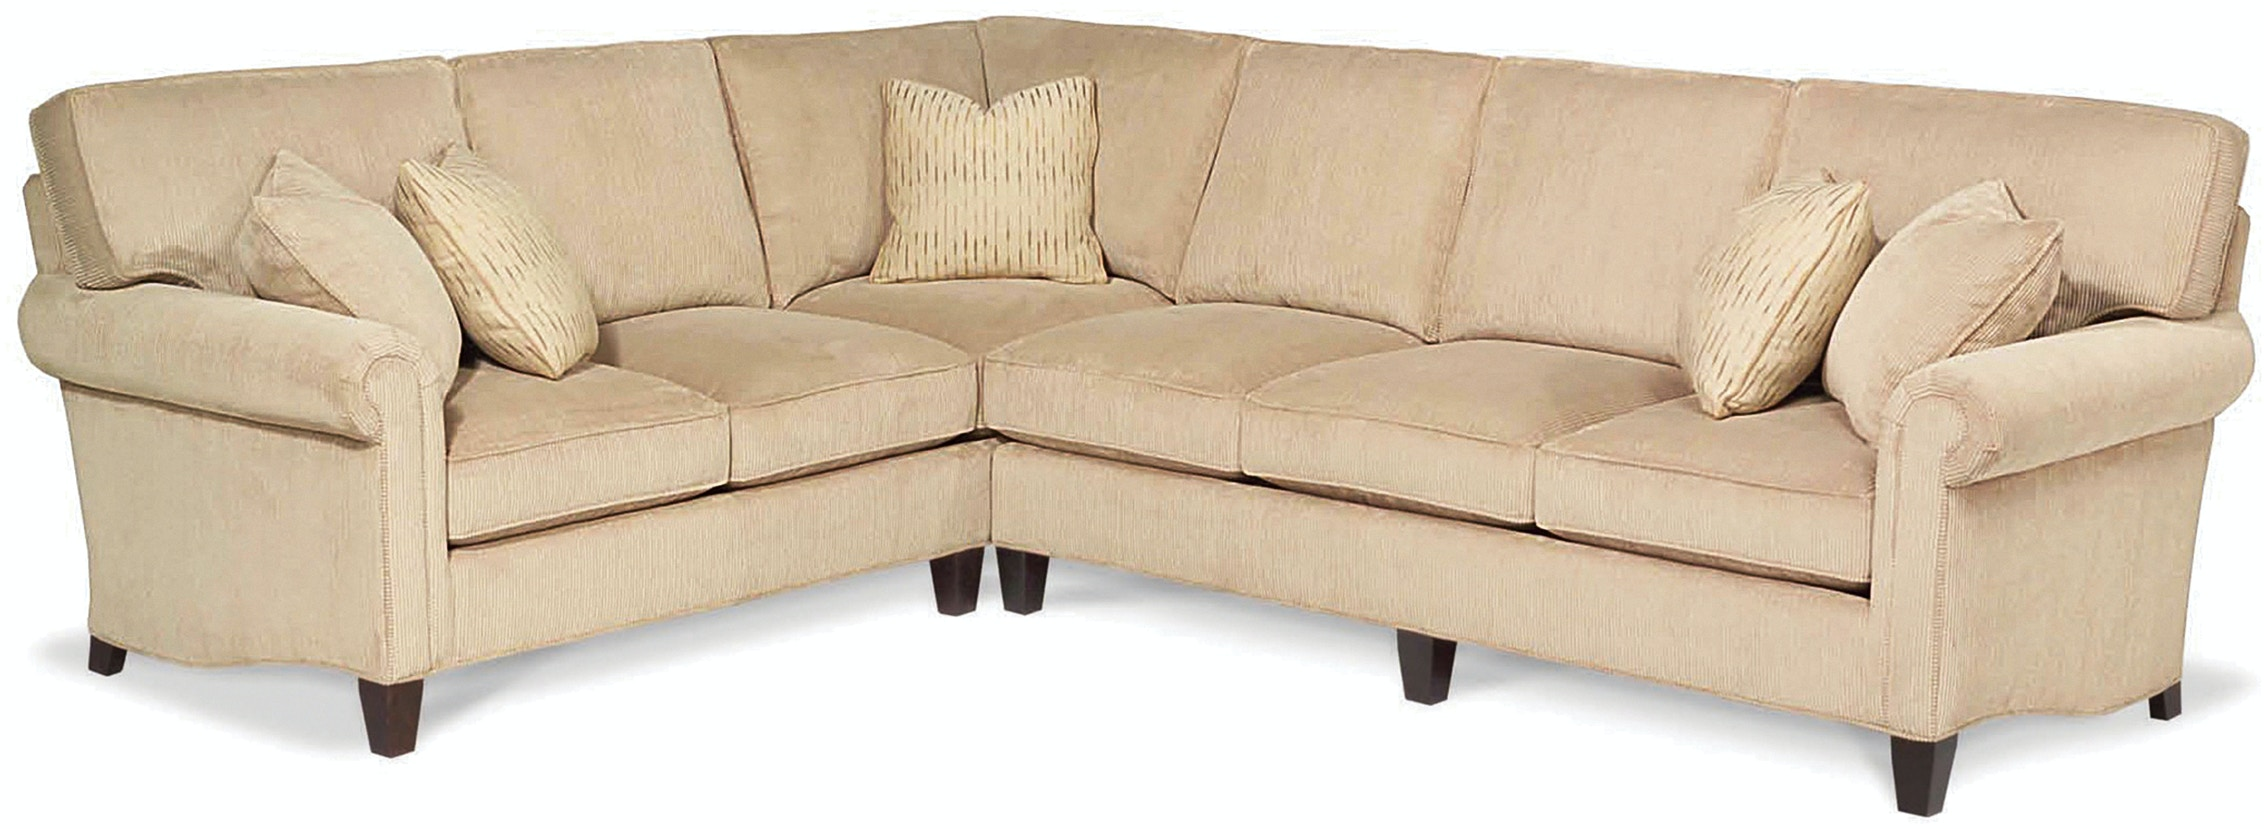 Taylor King Furniture K133 48 Living Room Cozy Creations Laf Corner Sofa